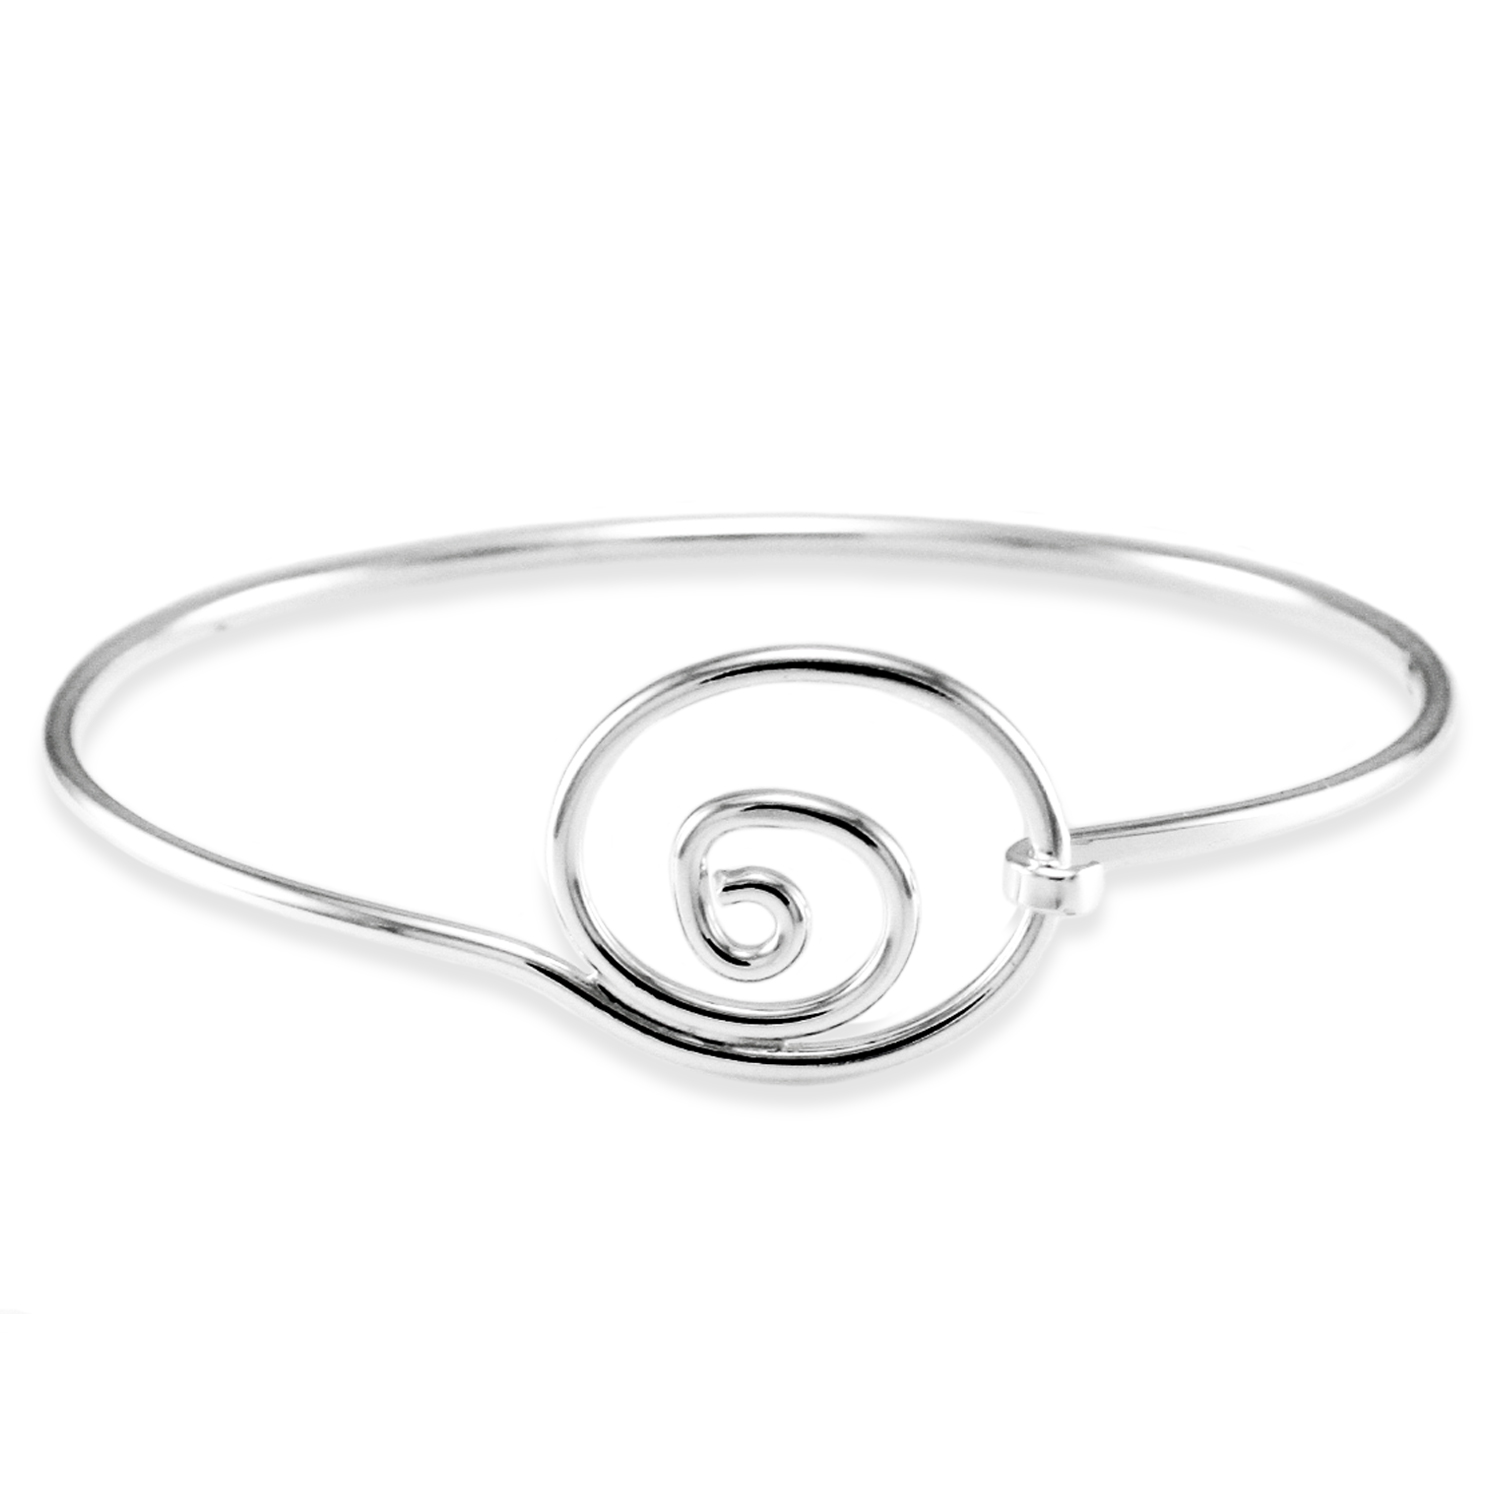 925 Sterling Silver Swirl Design BANGLE